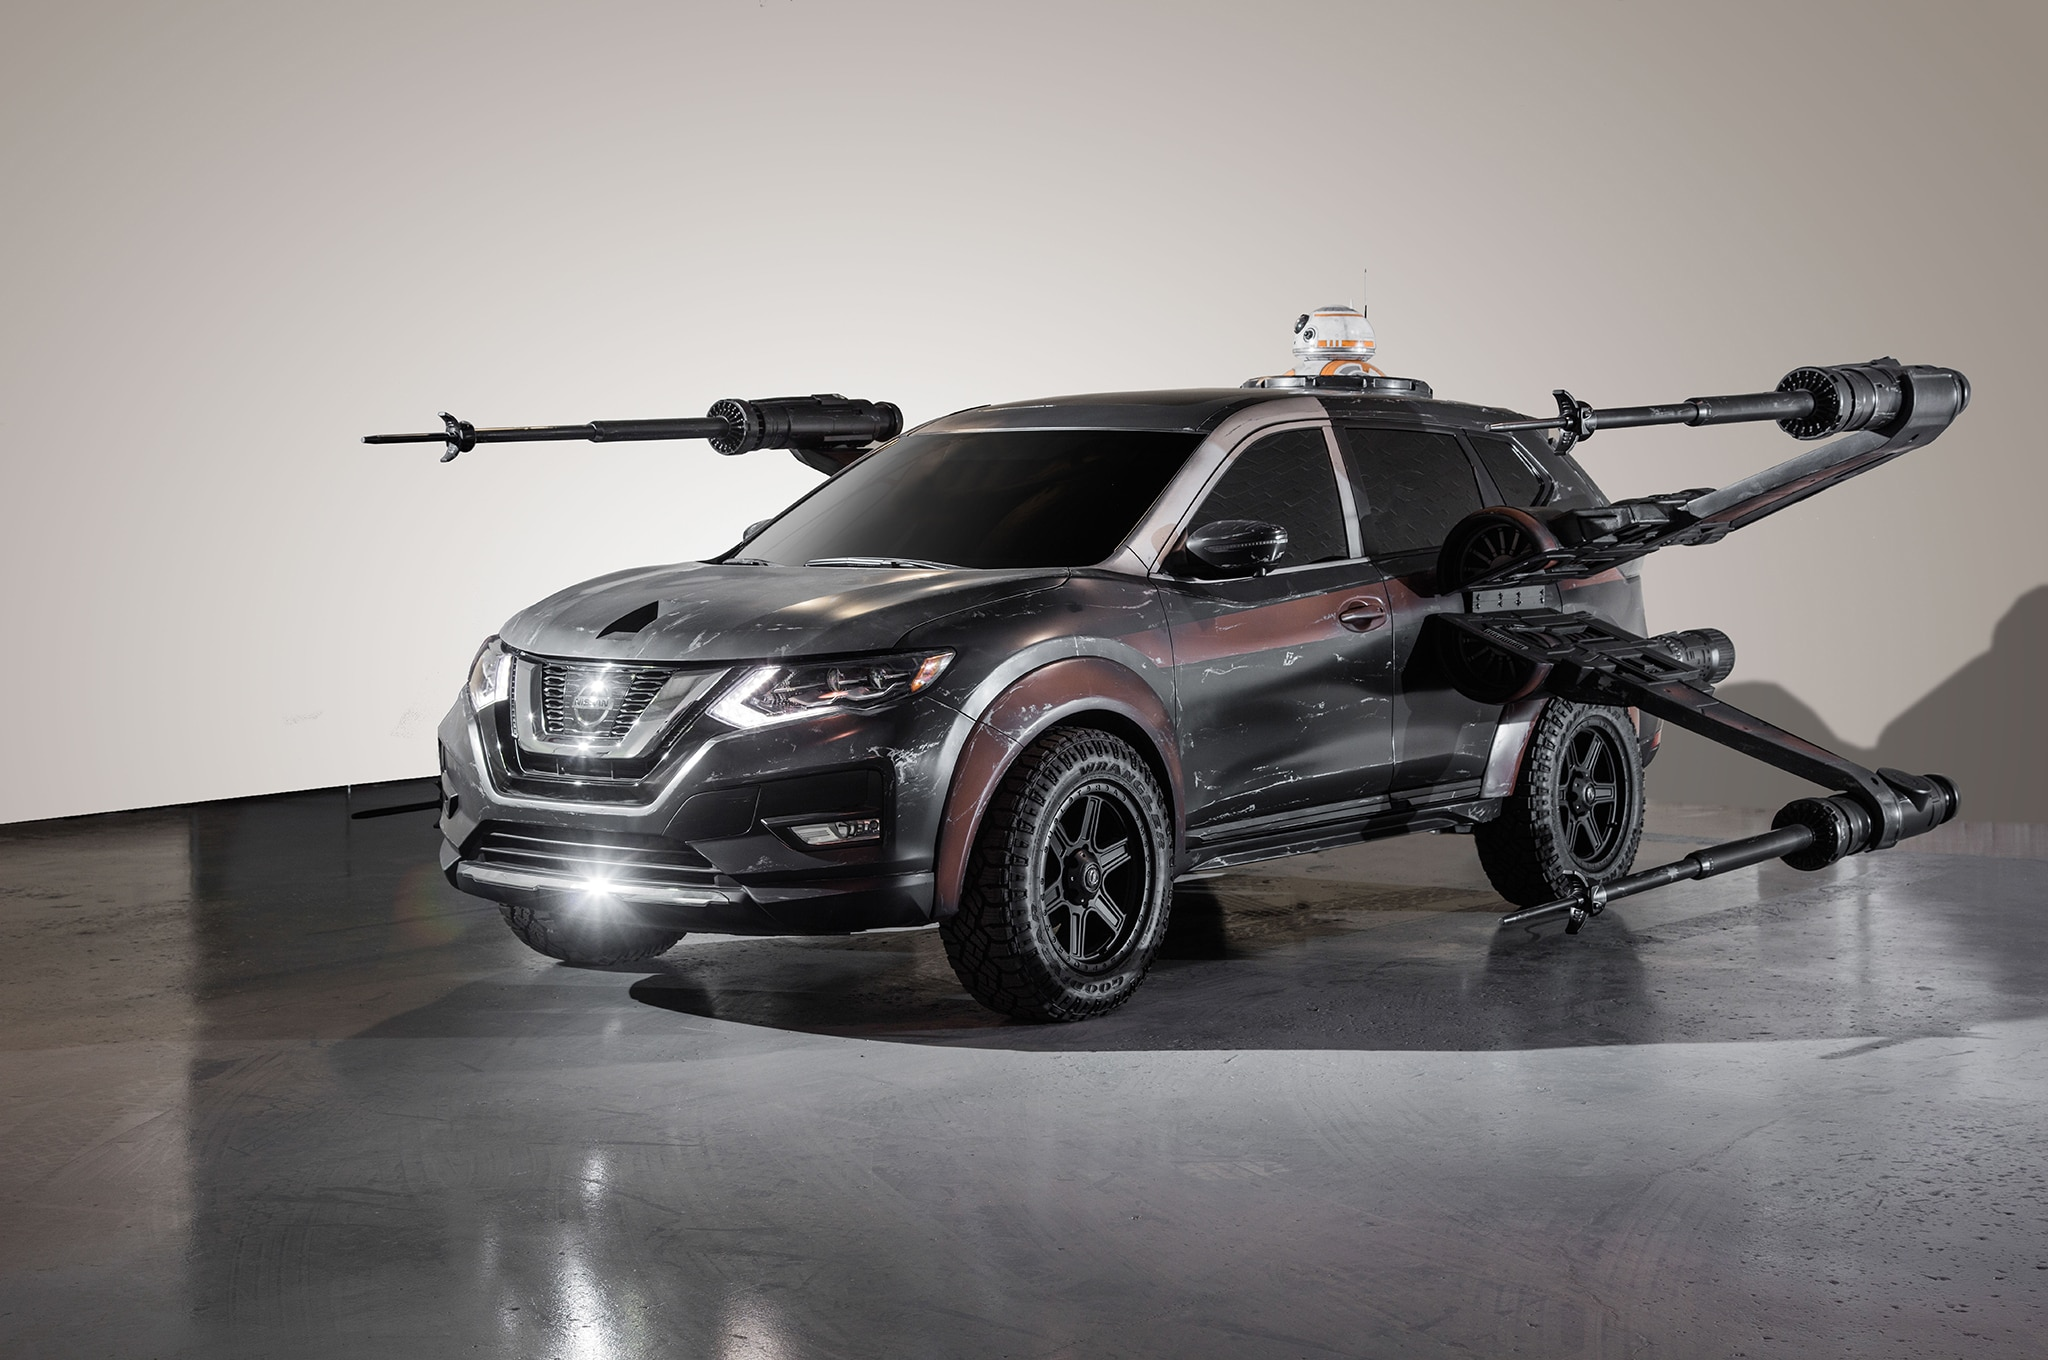 2018 Nissan Rogue Show Car Poe Damerons X Wing With BB 8 Front Three Quarter